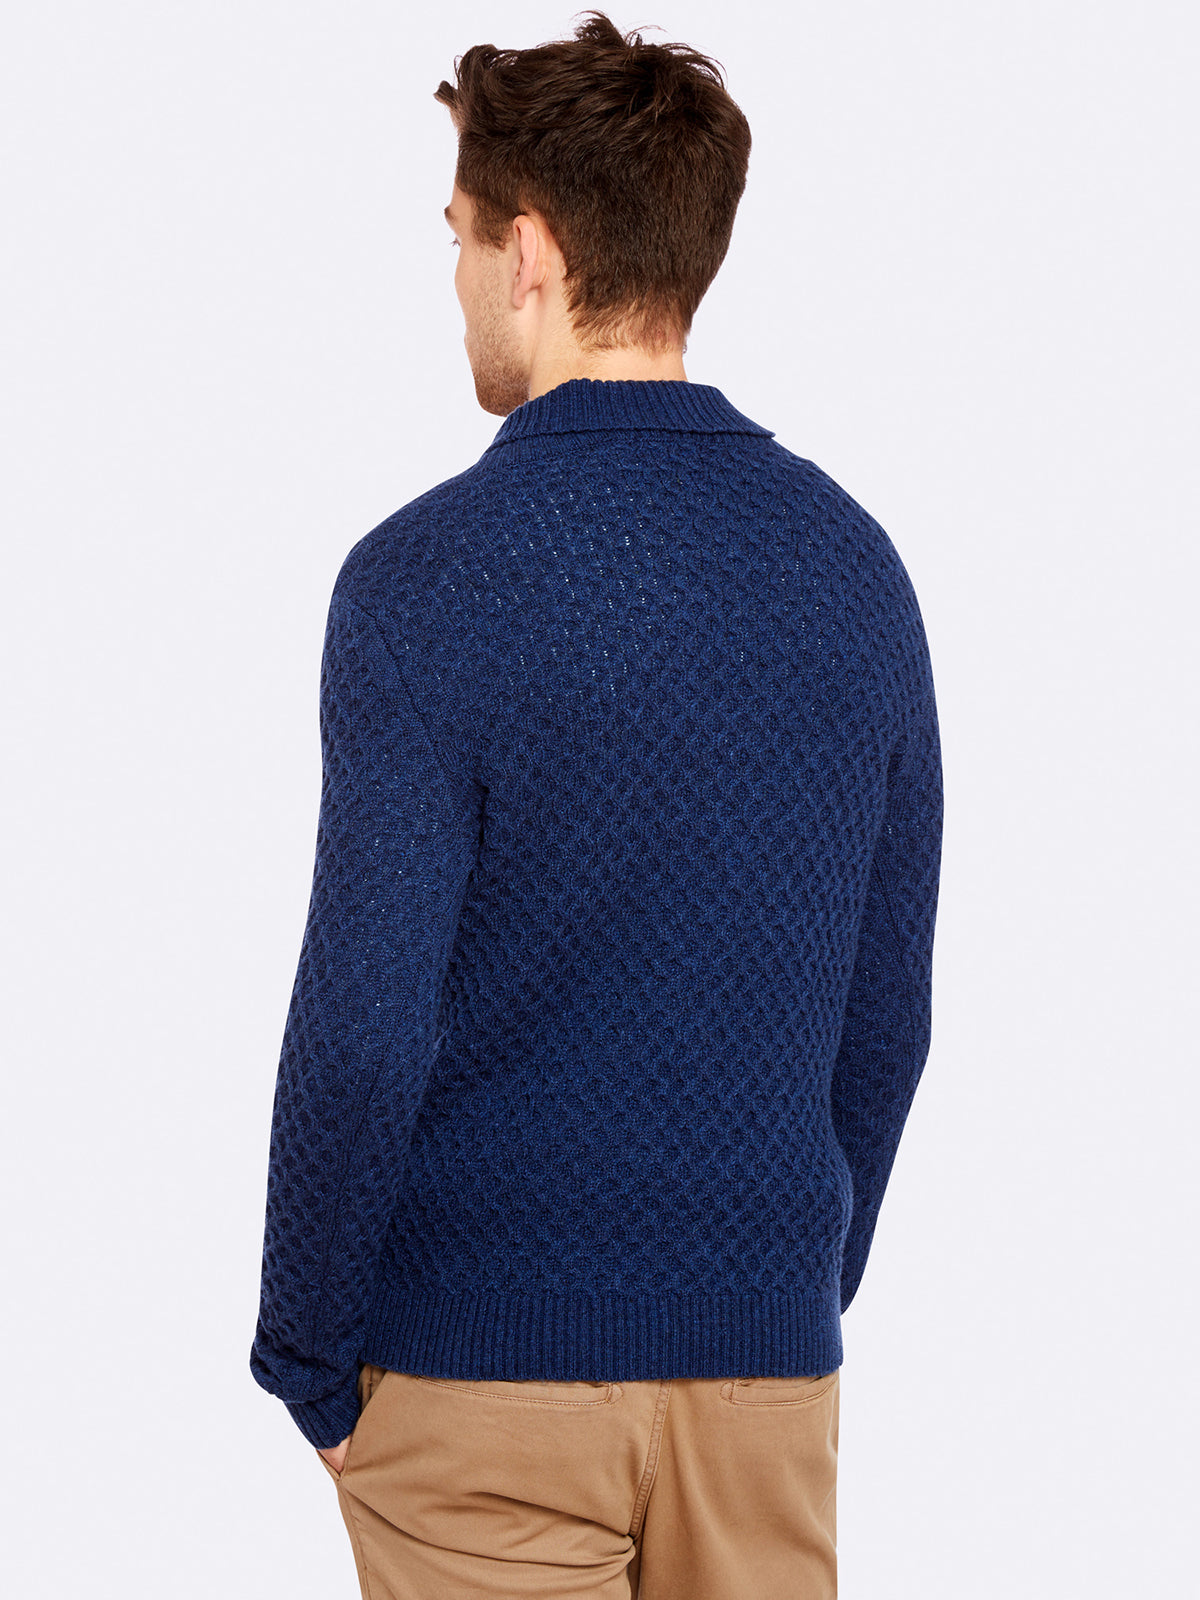 FERGUSON SHAWL COLLAR KNIT